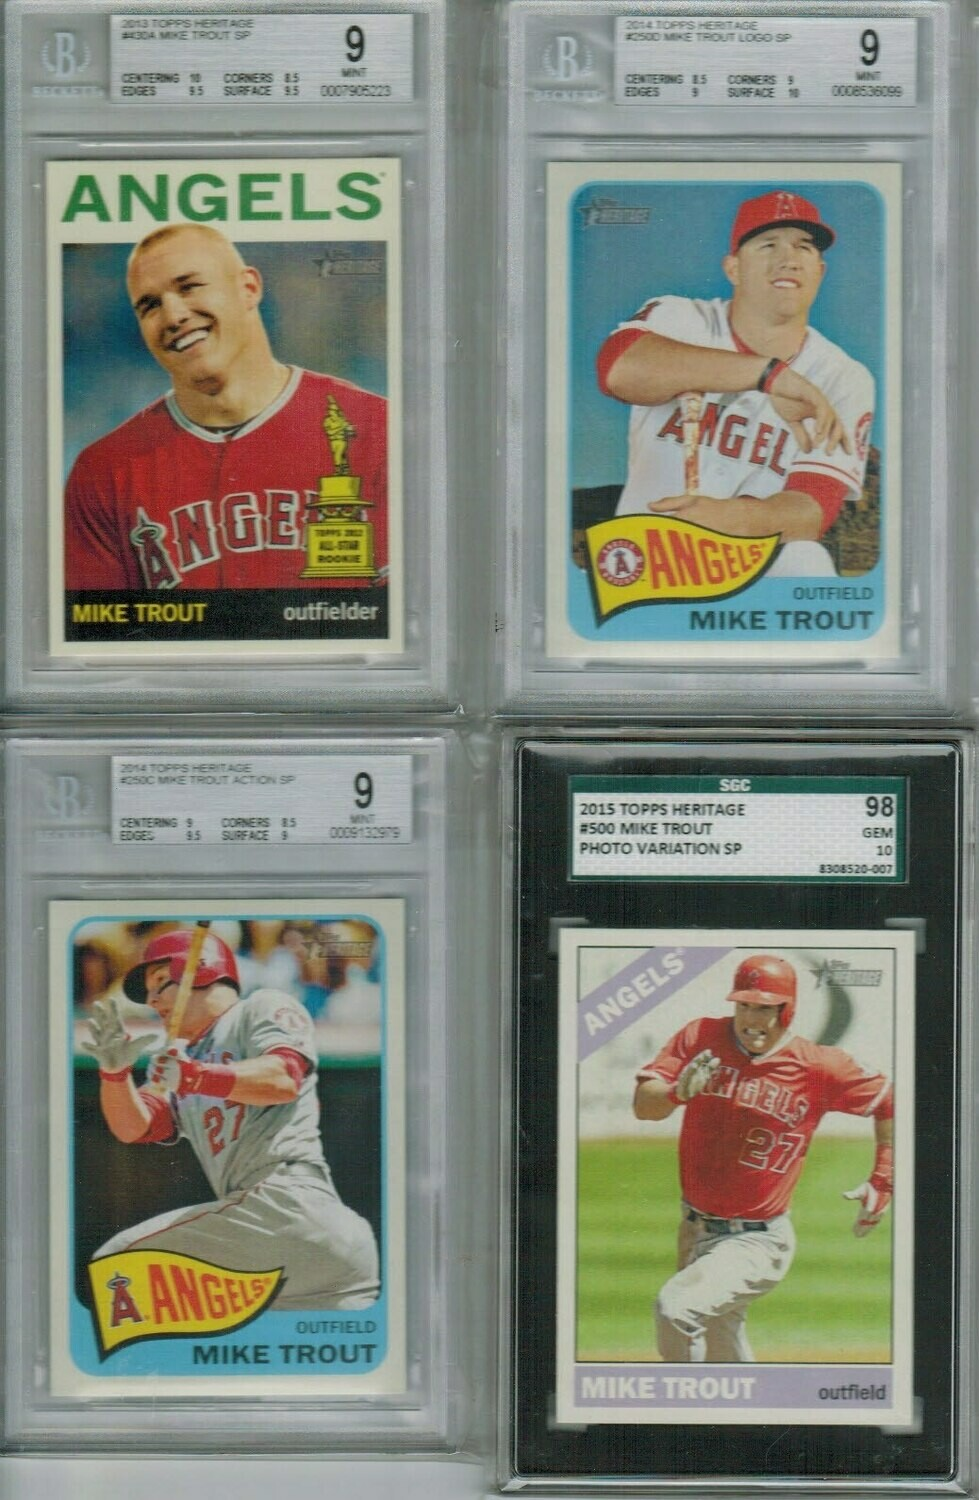 2014 Heritage #250C Mike Trout Action SP Beckett 9